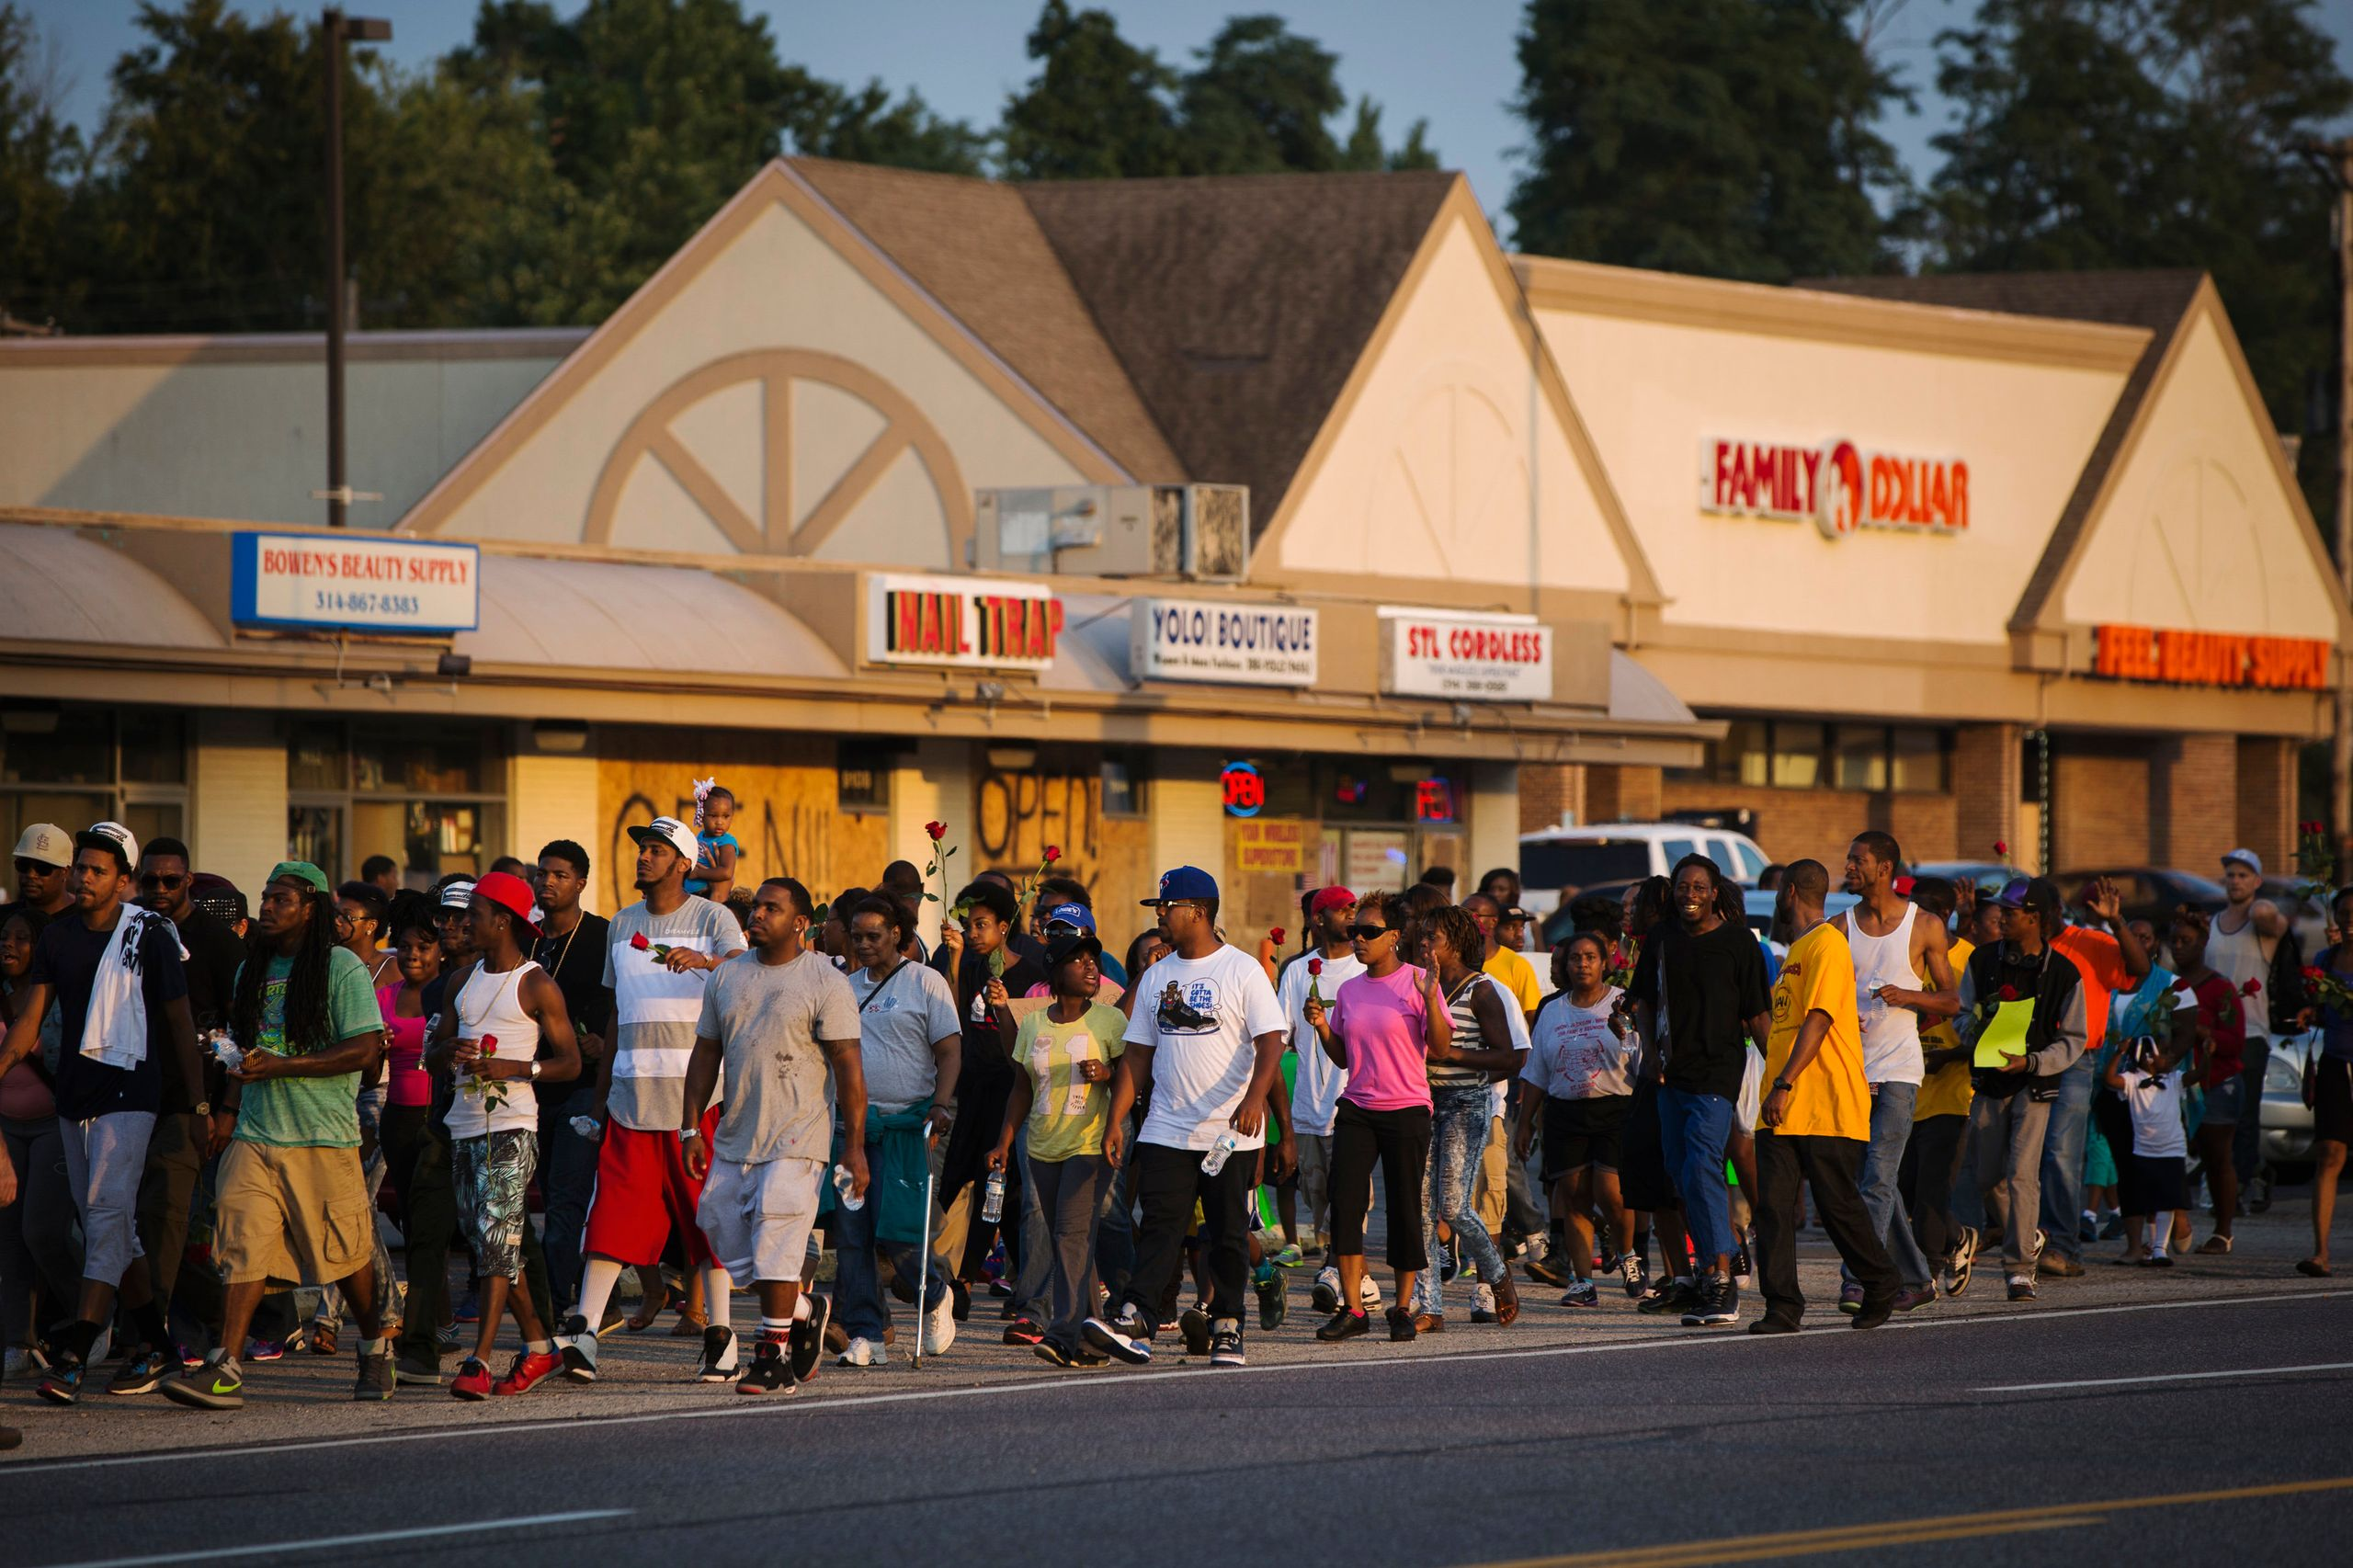 Demonstrators are seen during a peaceful march near Ferguson, Aug. 18, 2014.